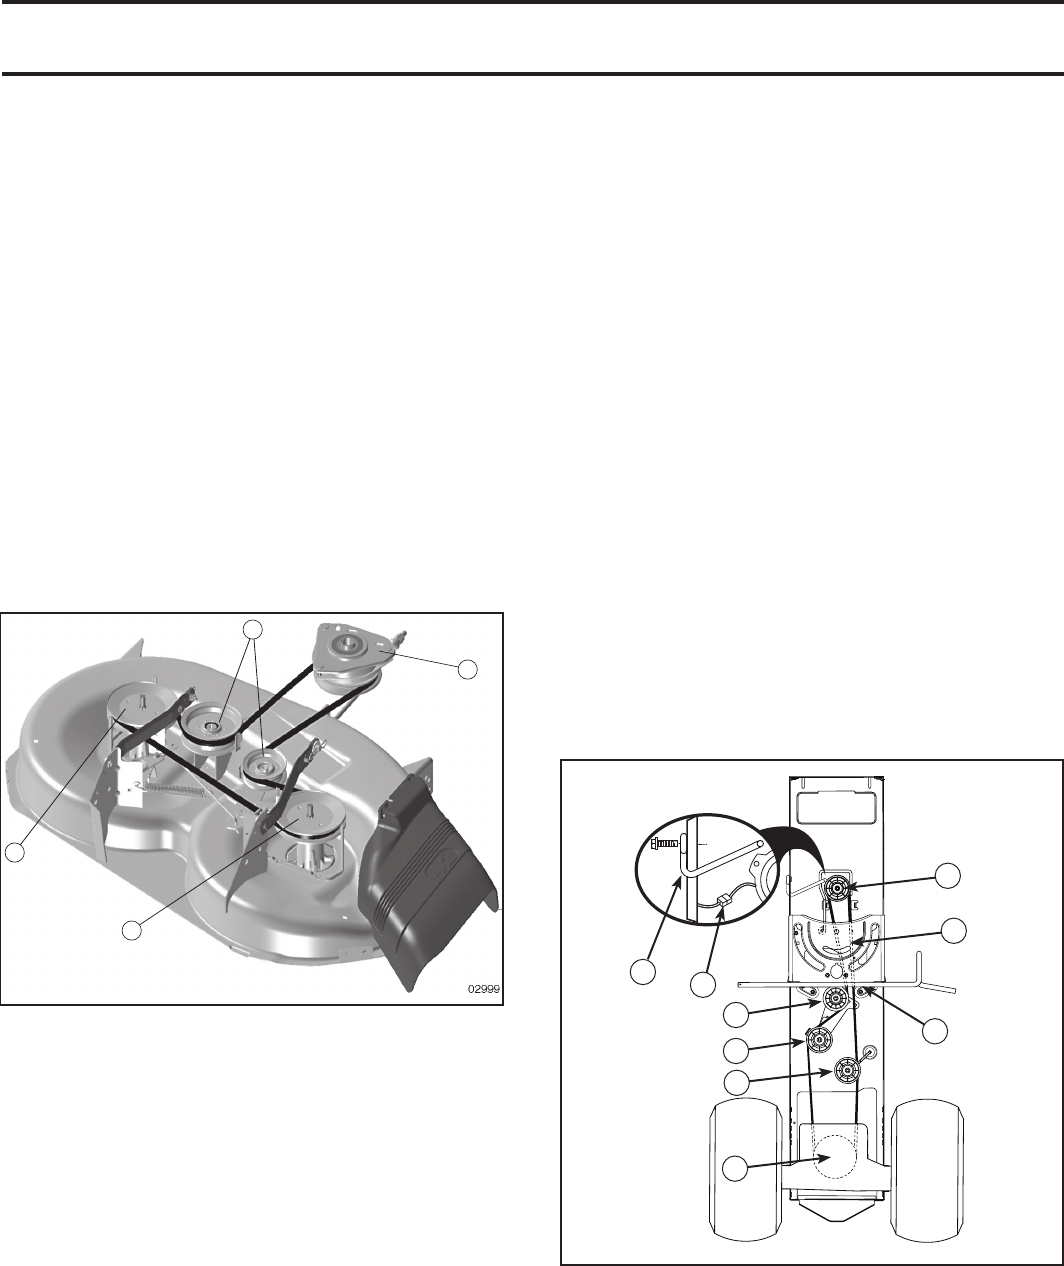 Husqvarna Wiring Diagram Yth2246 Will Be A Thing Diagrams Impala Windowiring Page 21 Of Lawn Mower User Guide Manualsonline Com Rh Lawnandgarden